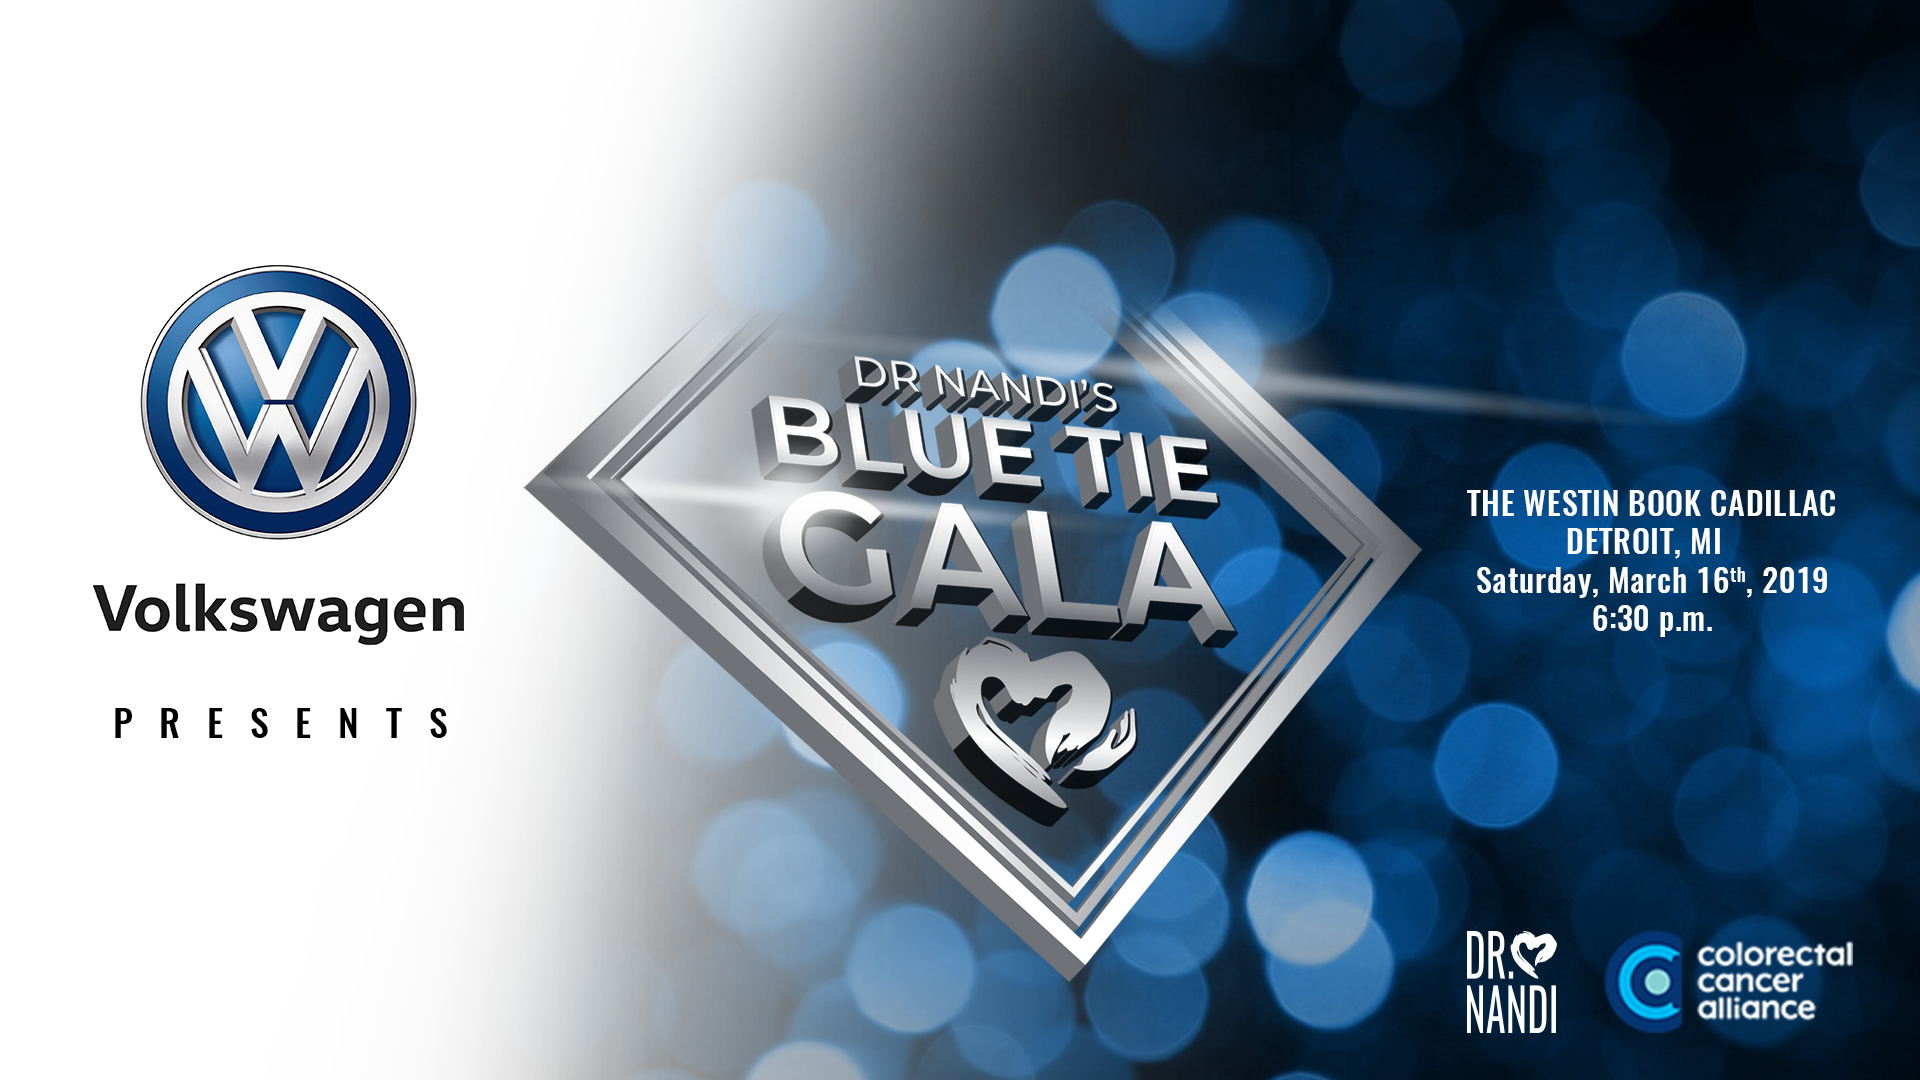 Volkswagen Presents Blue Tie Gala